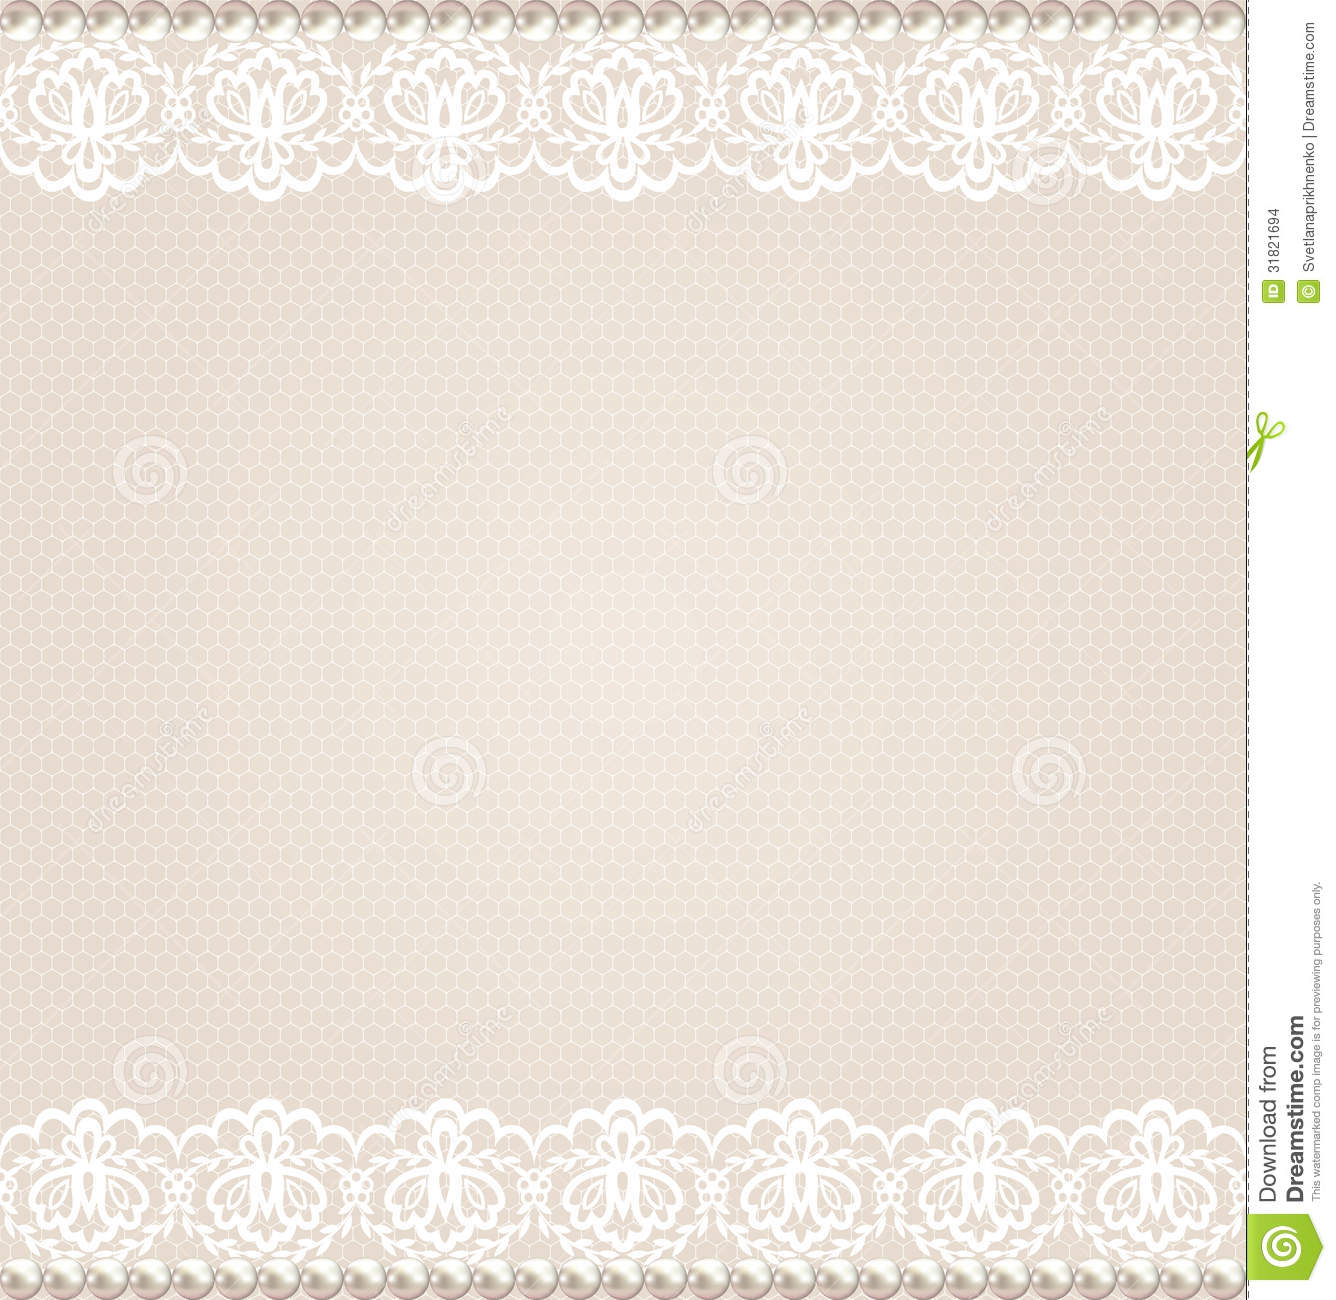 Lace Floral Border Stock Vector Illustration Of White